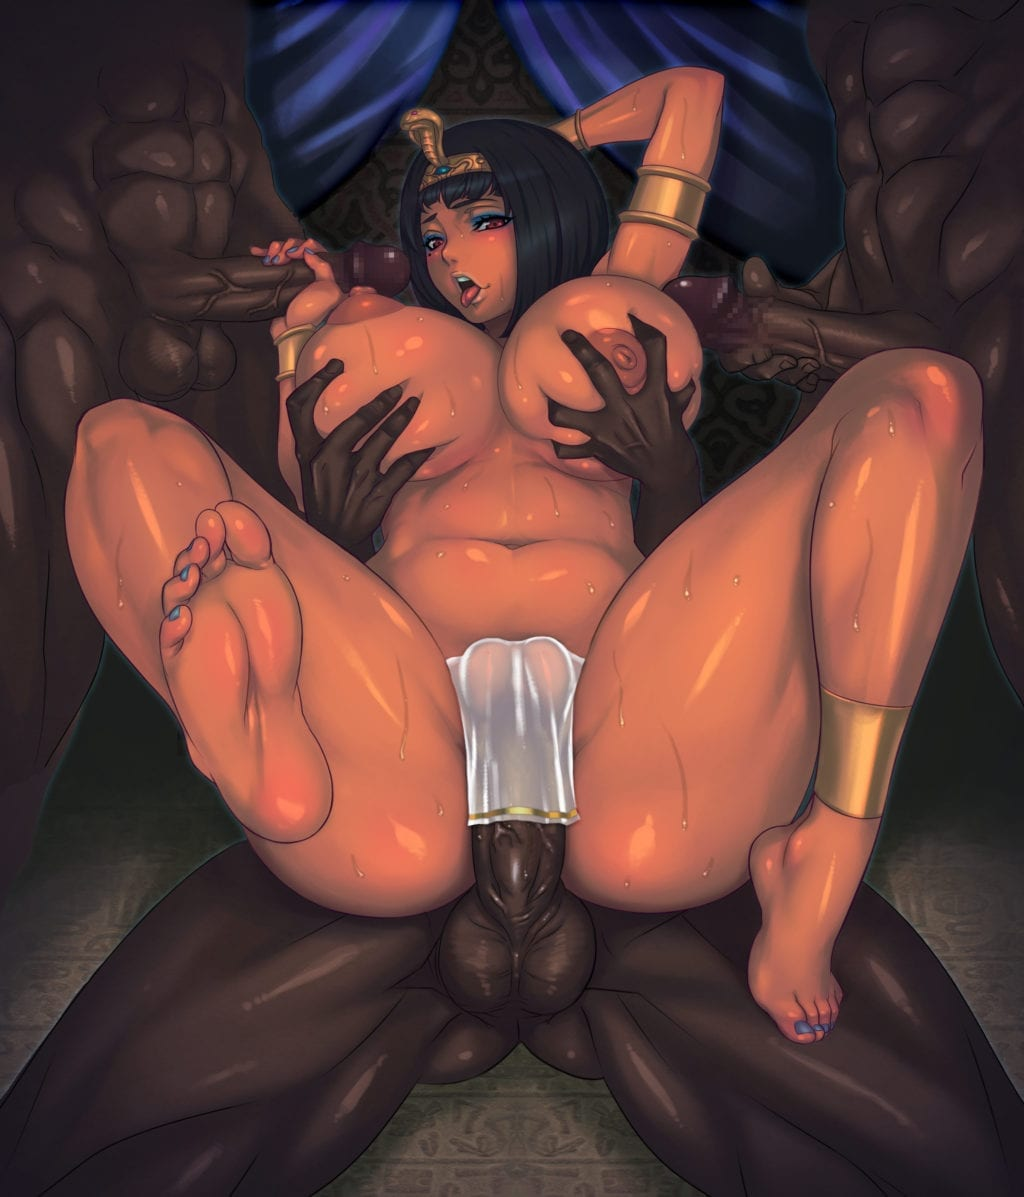 Queen of Spades Hentai - II - image Queen-of-Spades-Hentai-II-19-1024x1197 on https://blackcockcult.com